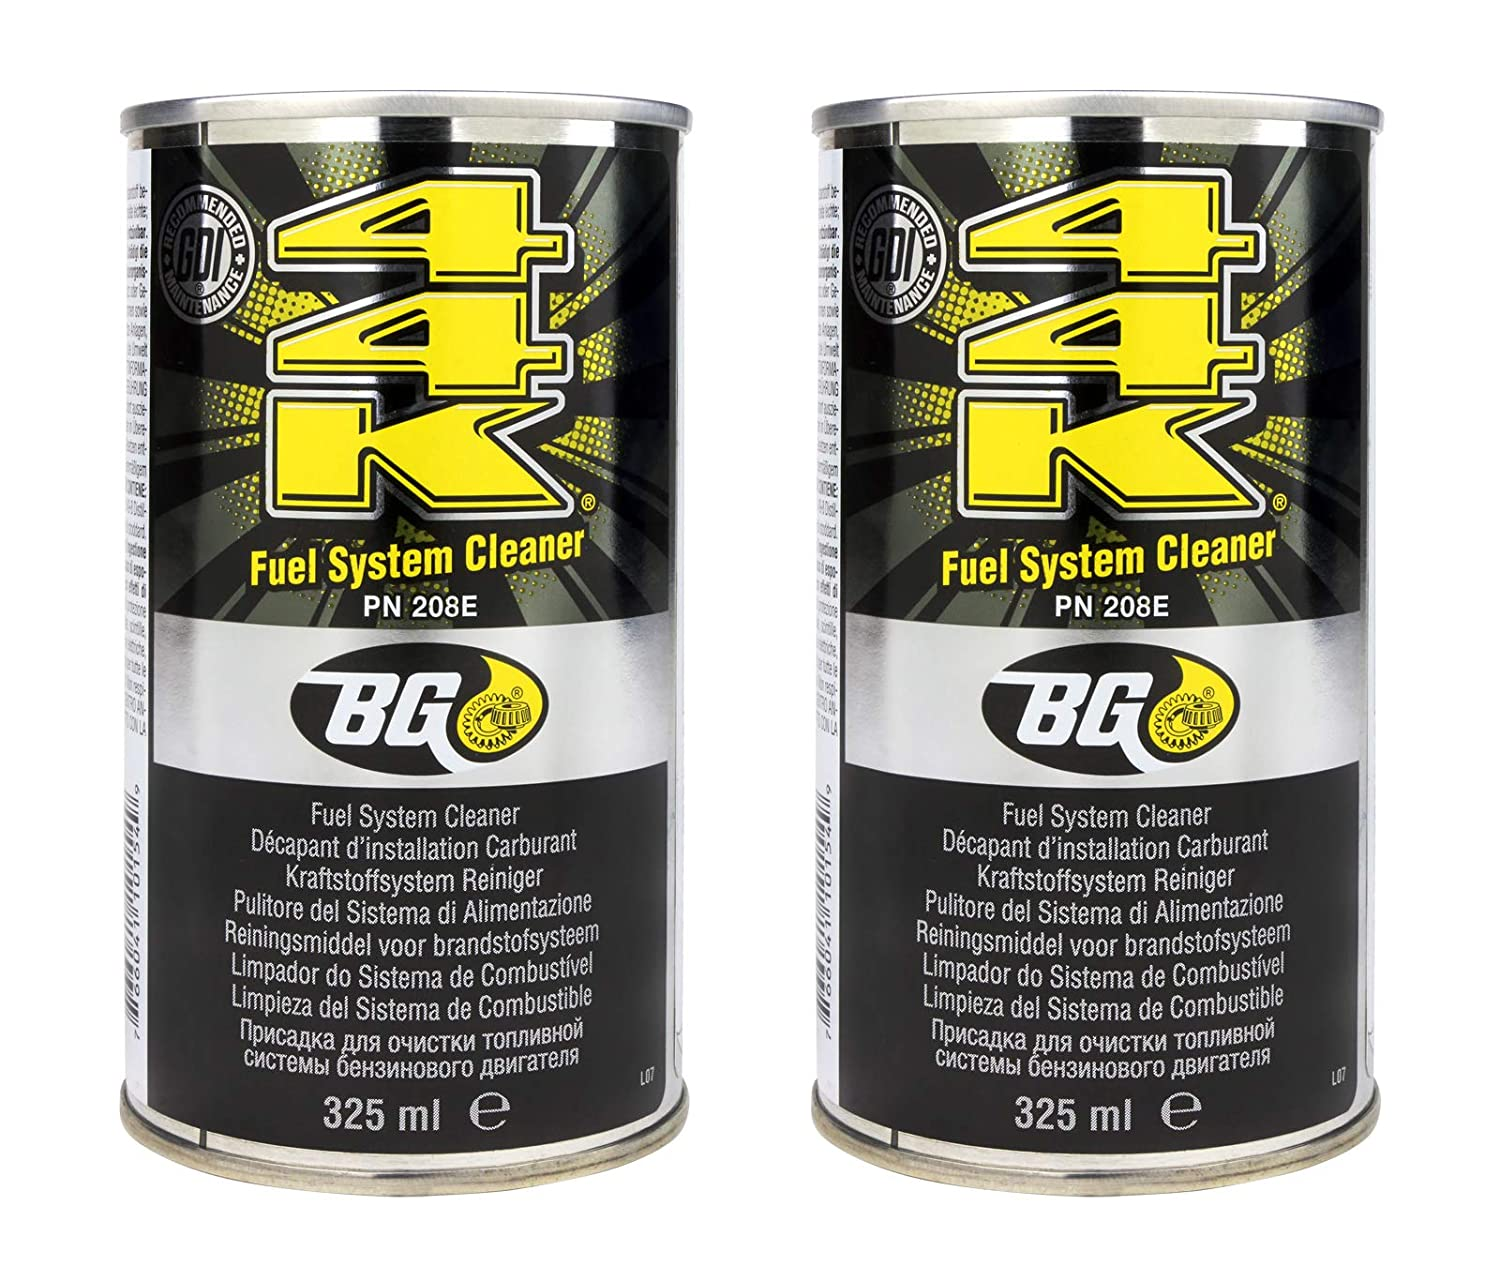 2 x BG 44K Power Enhancer Petrol Fuel System Cleaner (Twin Pack) - Free Delivery